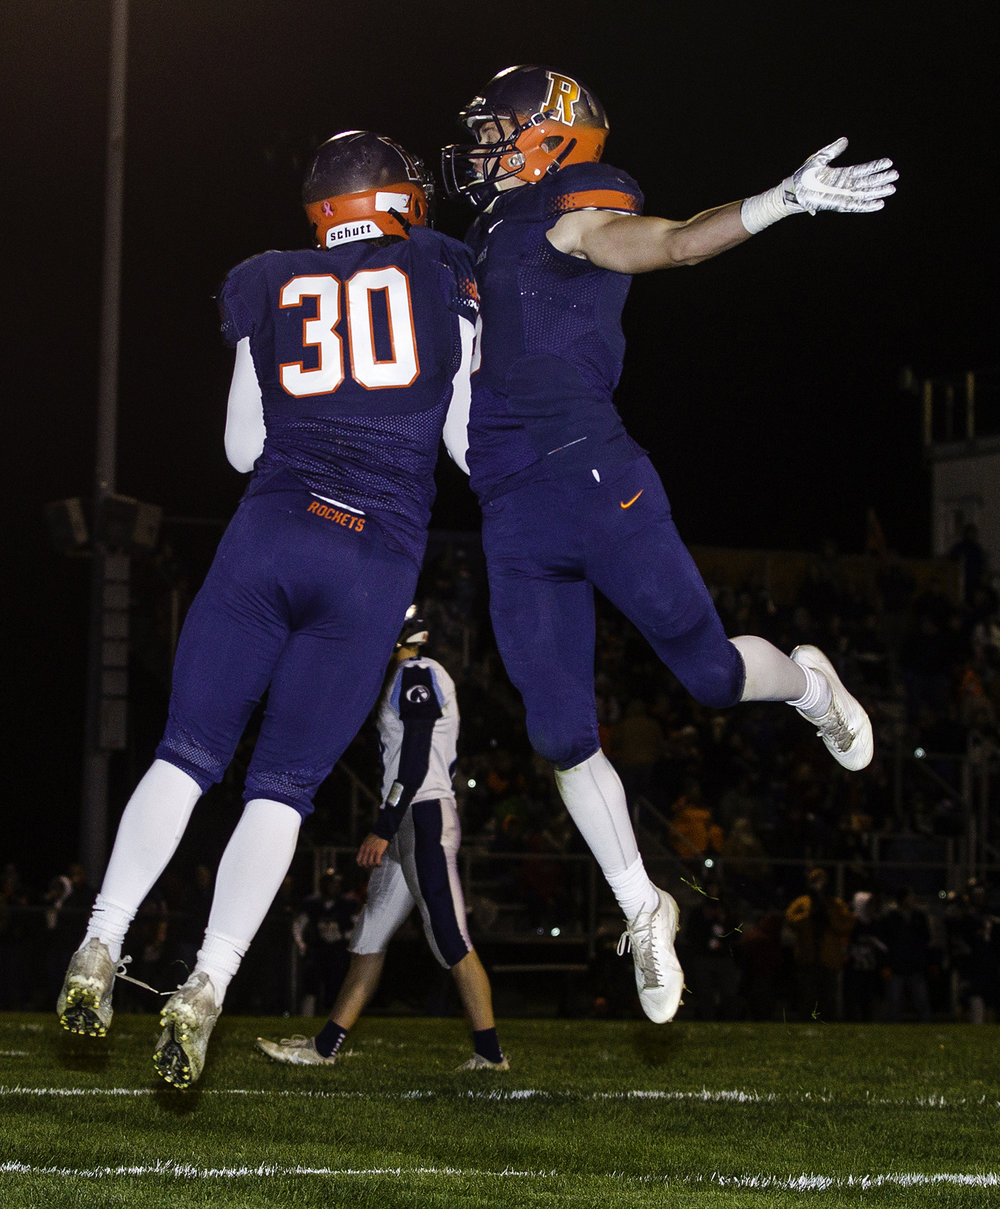 Rochester's Zach Gleeson, left, and Rochester's Cade Eddington celebrate Gleeson's second quarter touchdown at Rochester High School Friday, Oct. 27, 2017. [Ted Schurter/The State Journal-Register]